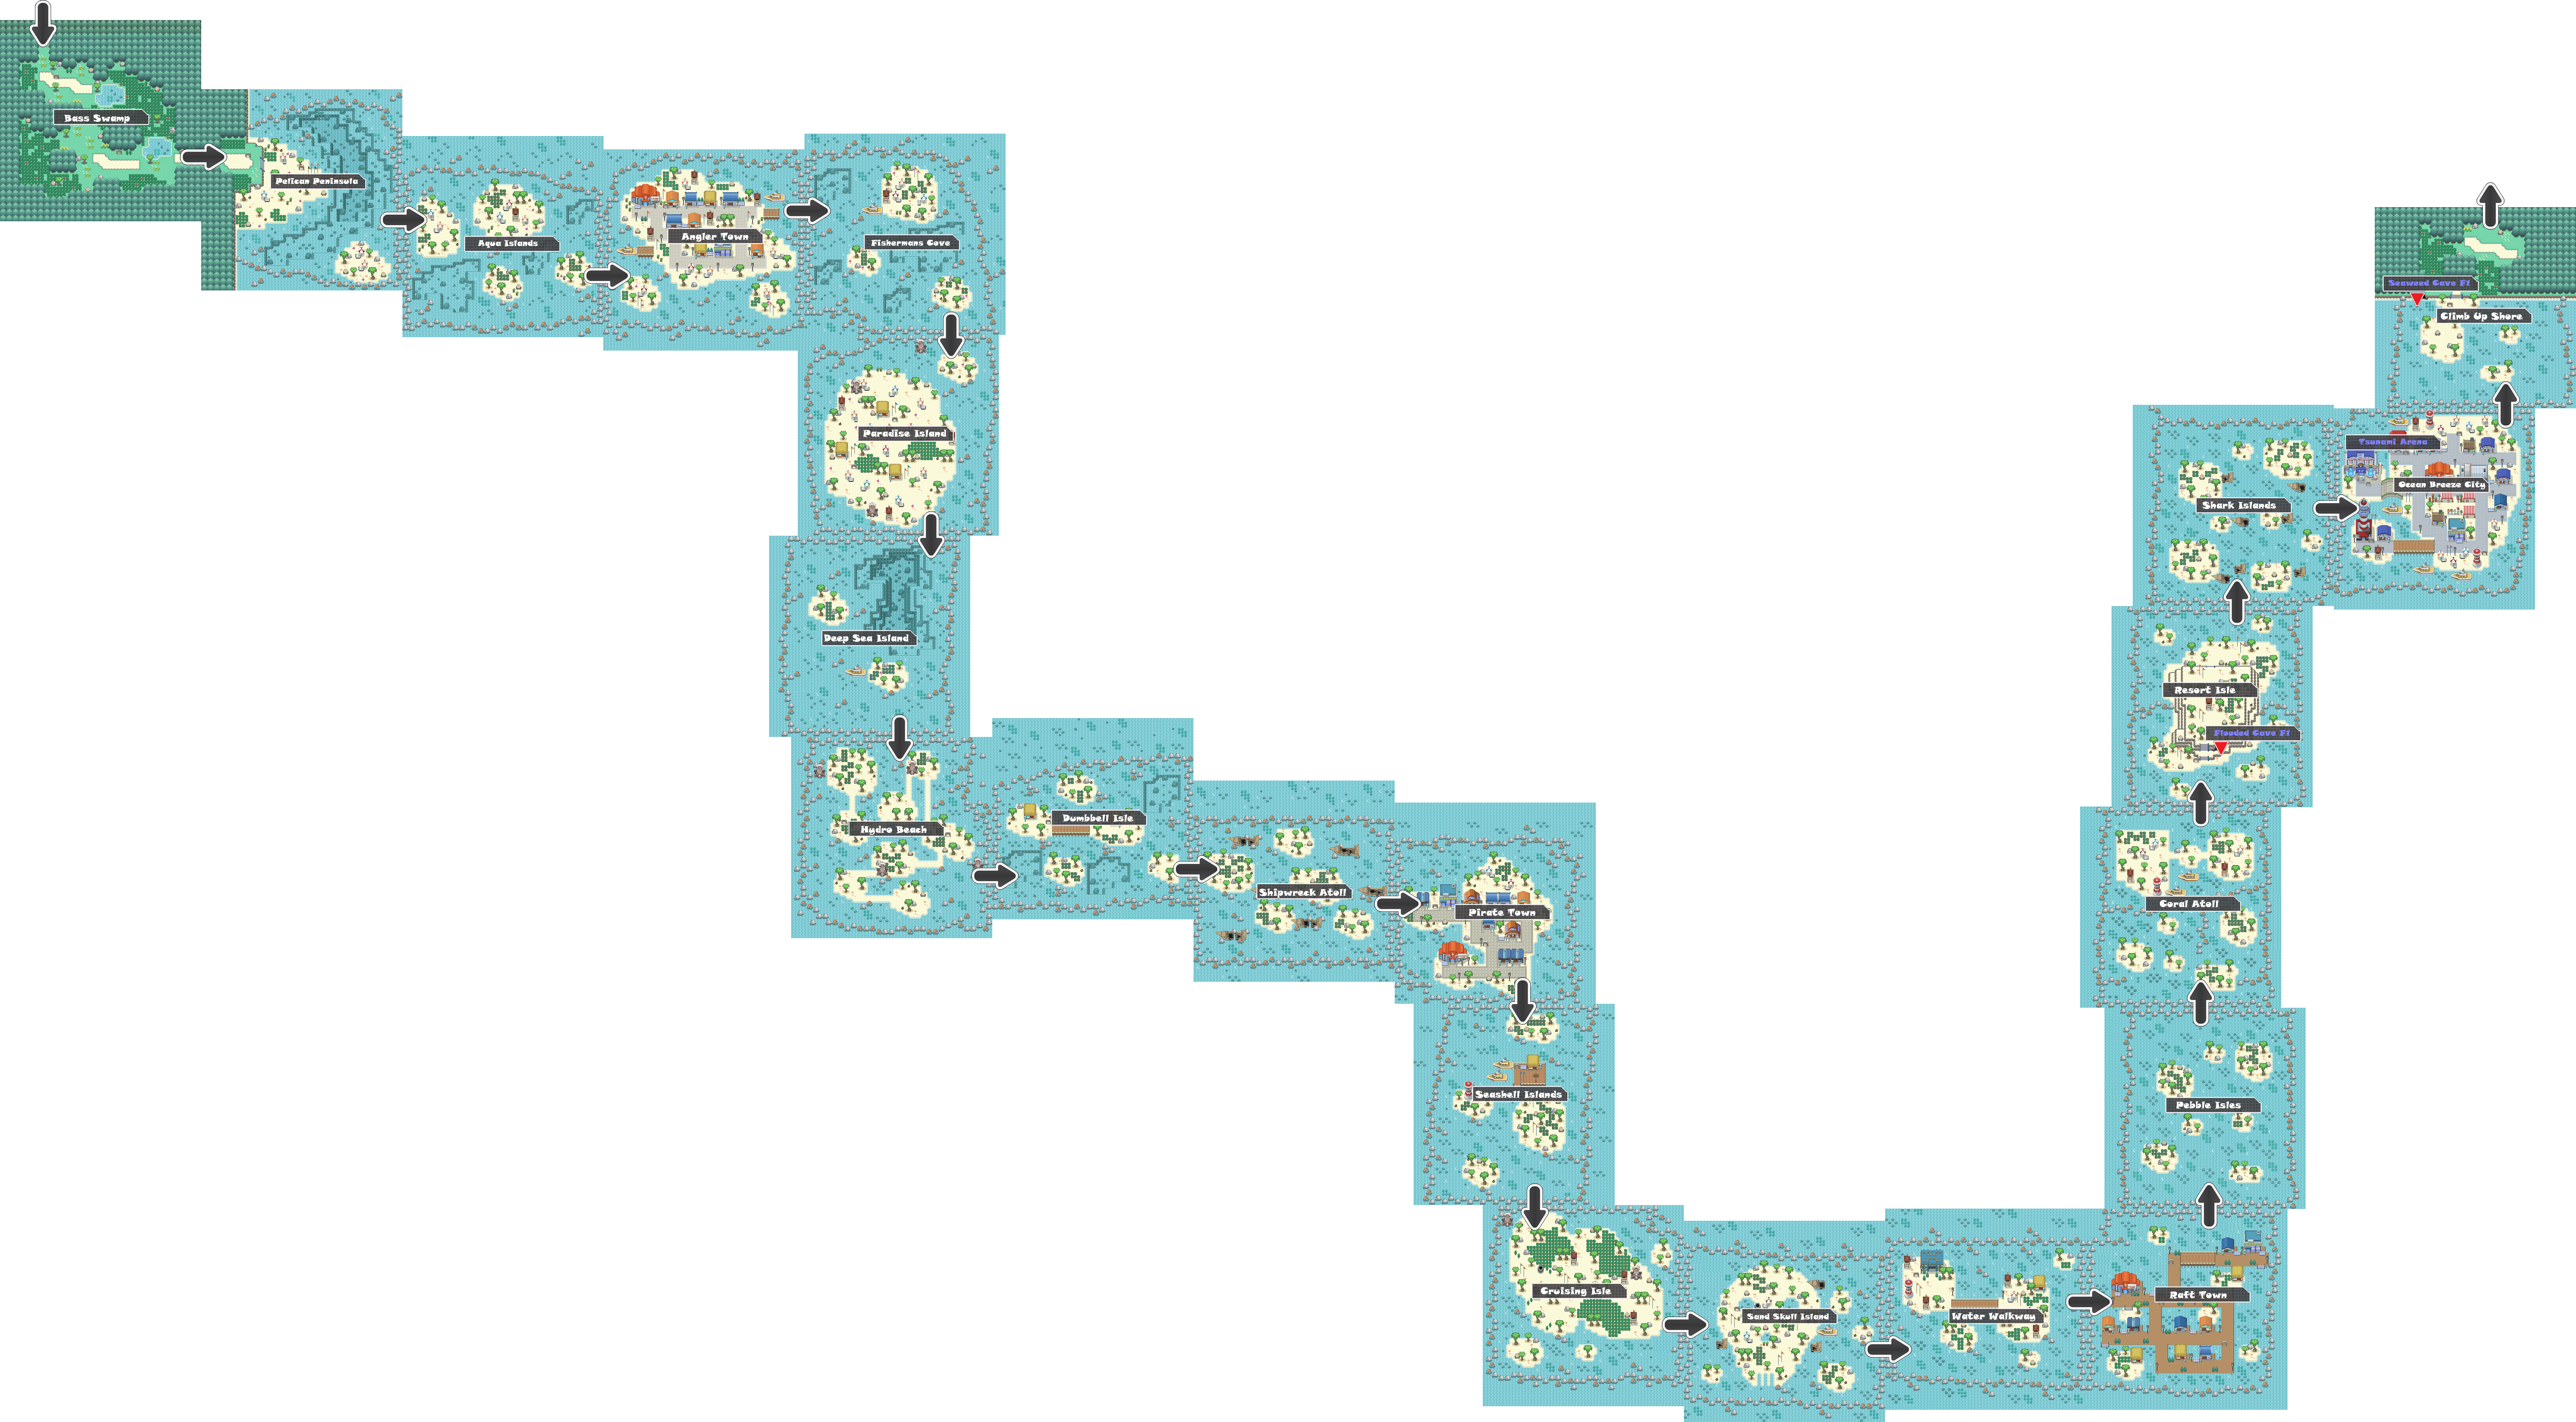 Pokemon Like Monster MMORPG V2 Zone 5 World Map